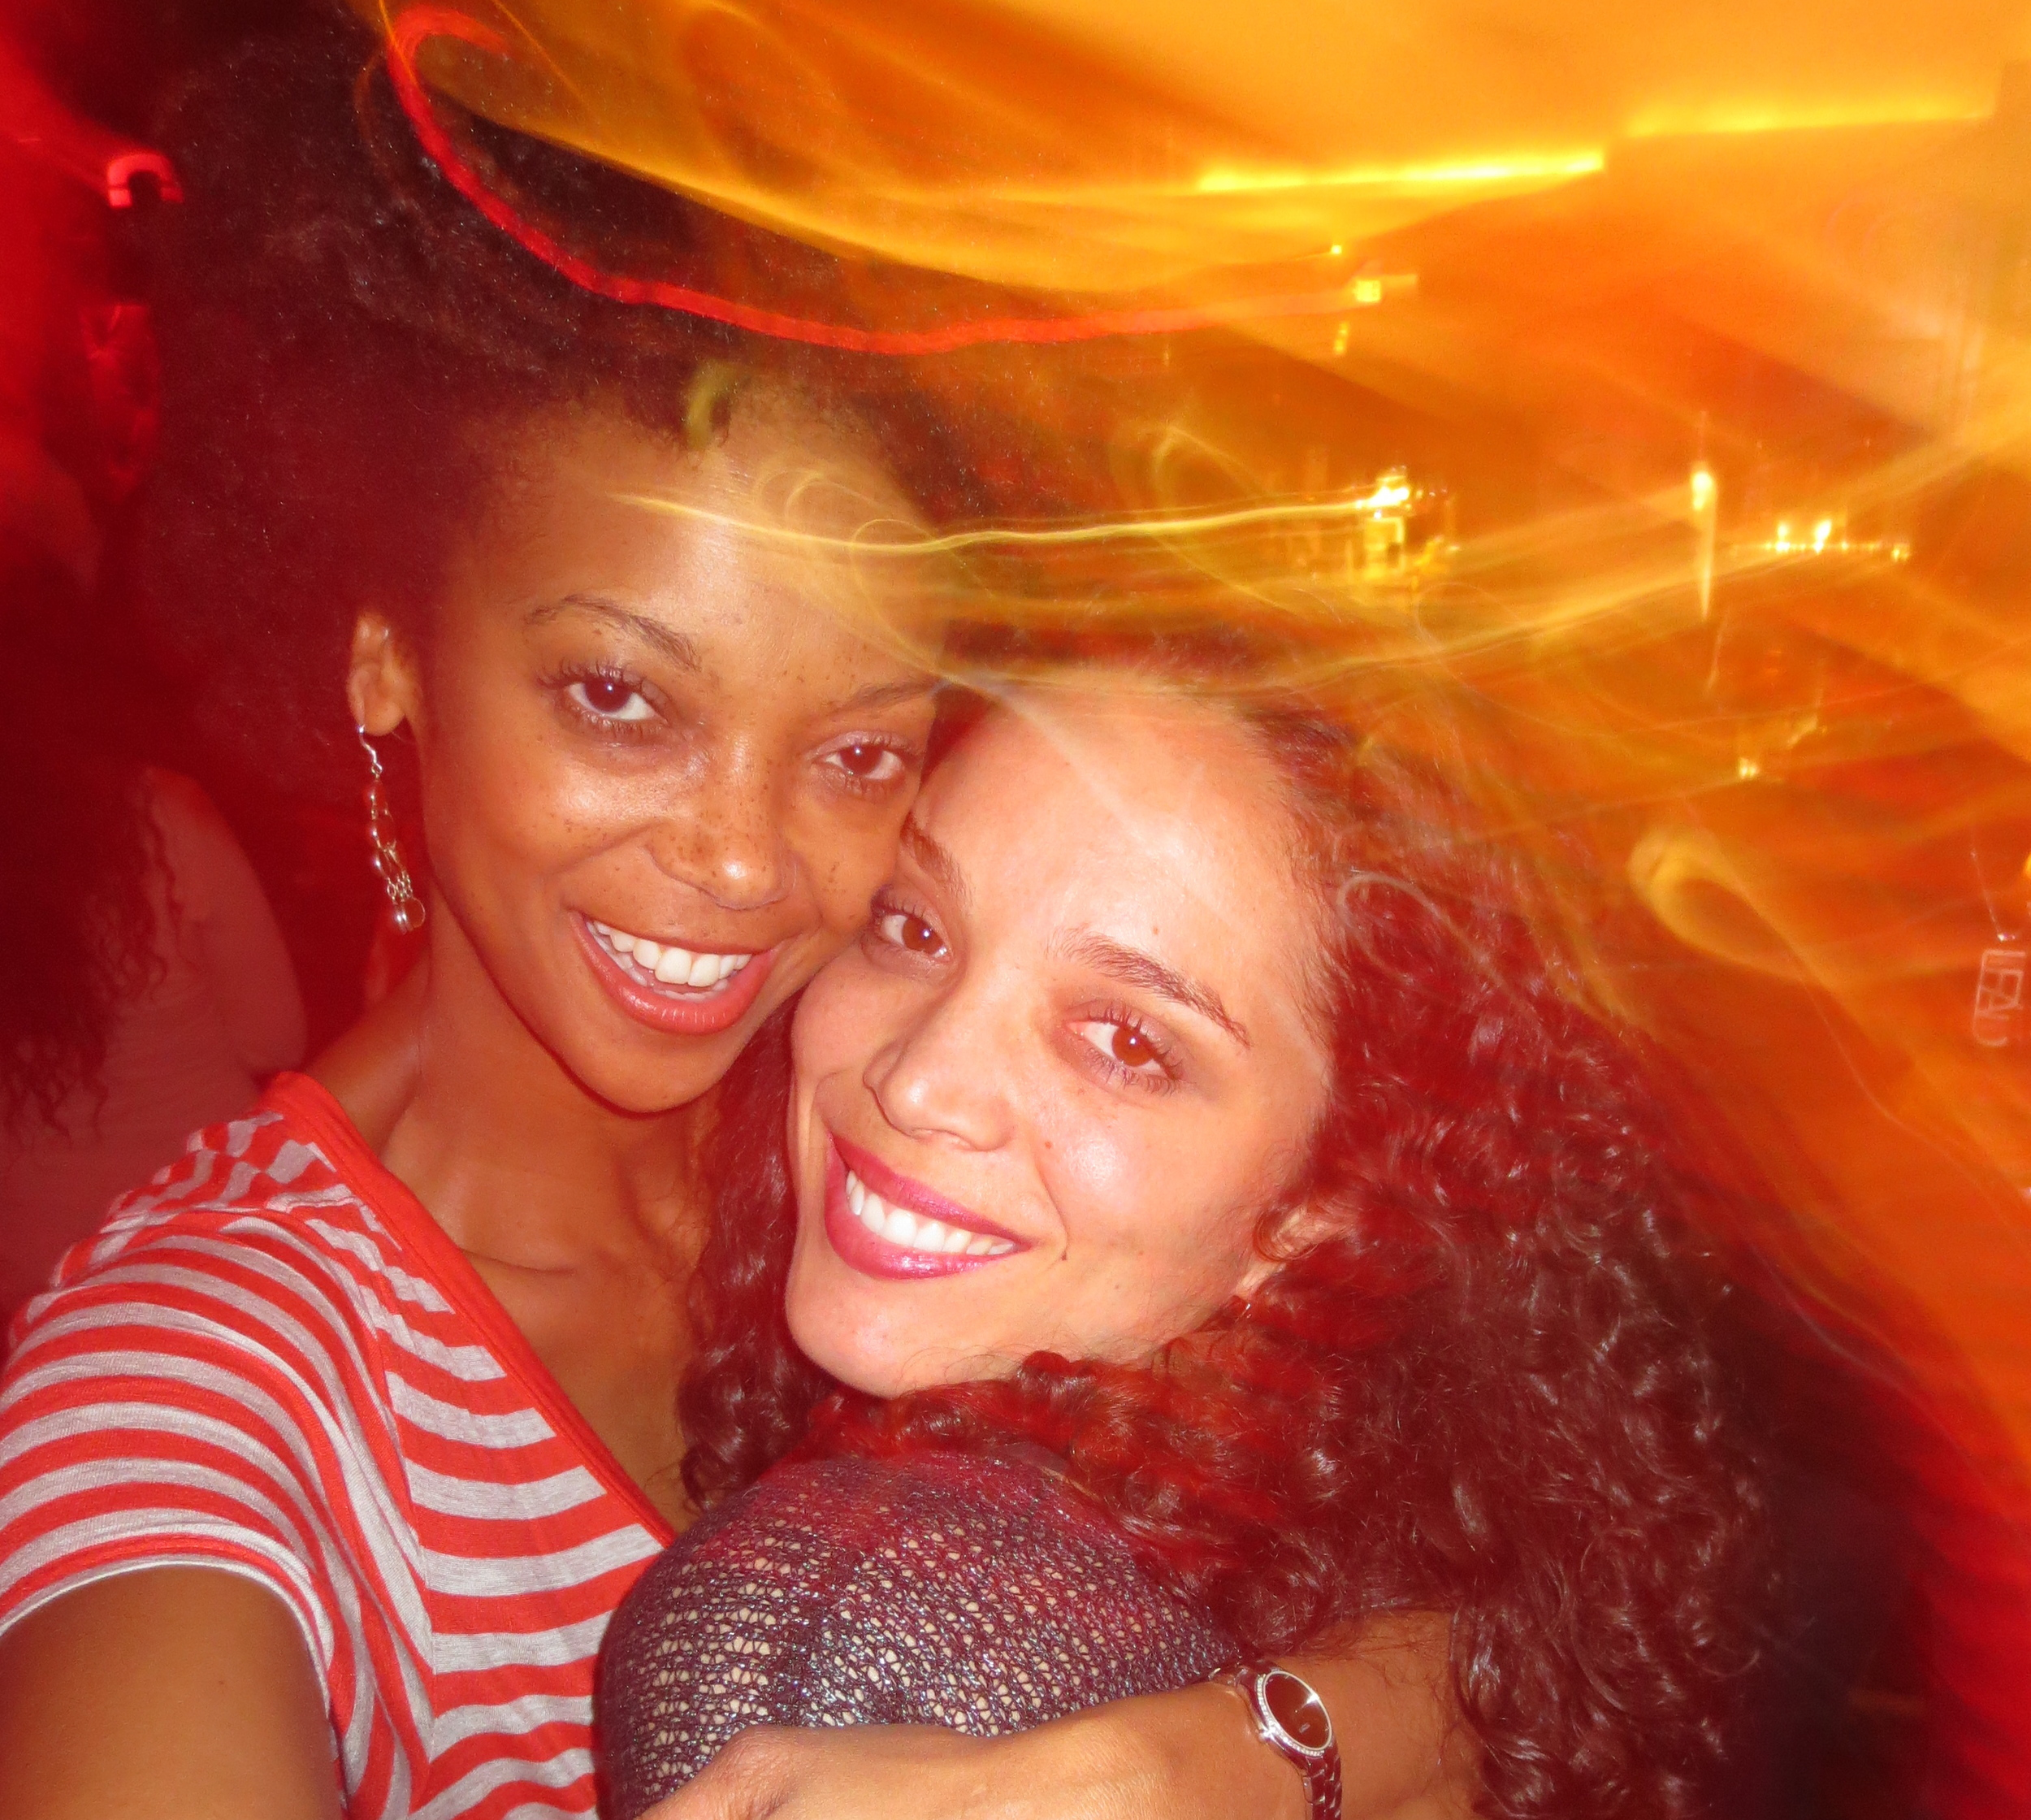 Me and Daphnee on the dance floor in NYC.